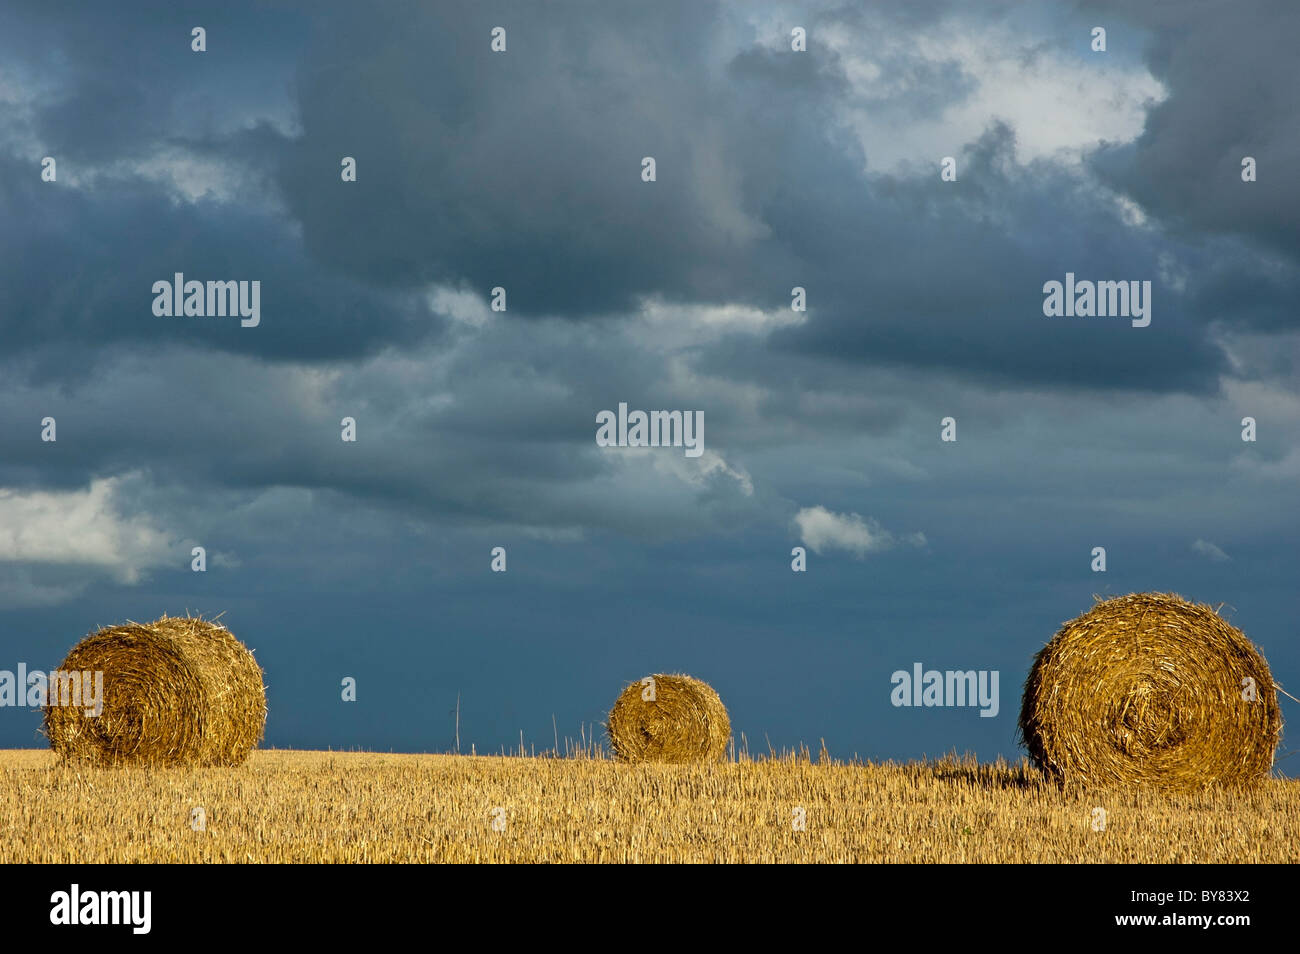 Hay bales in harvested field with stormy sky - Stock Image